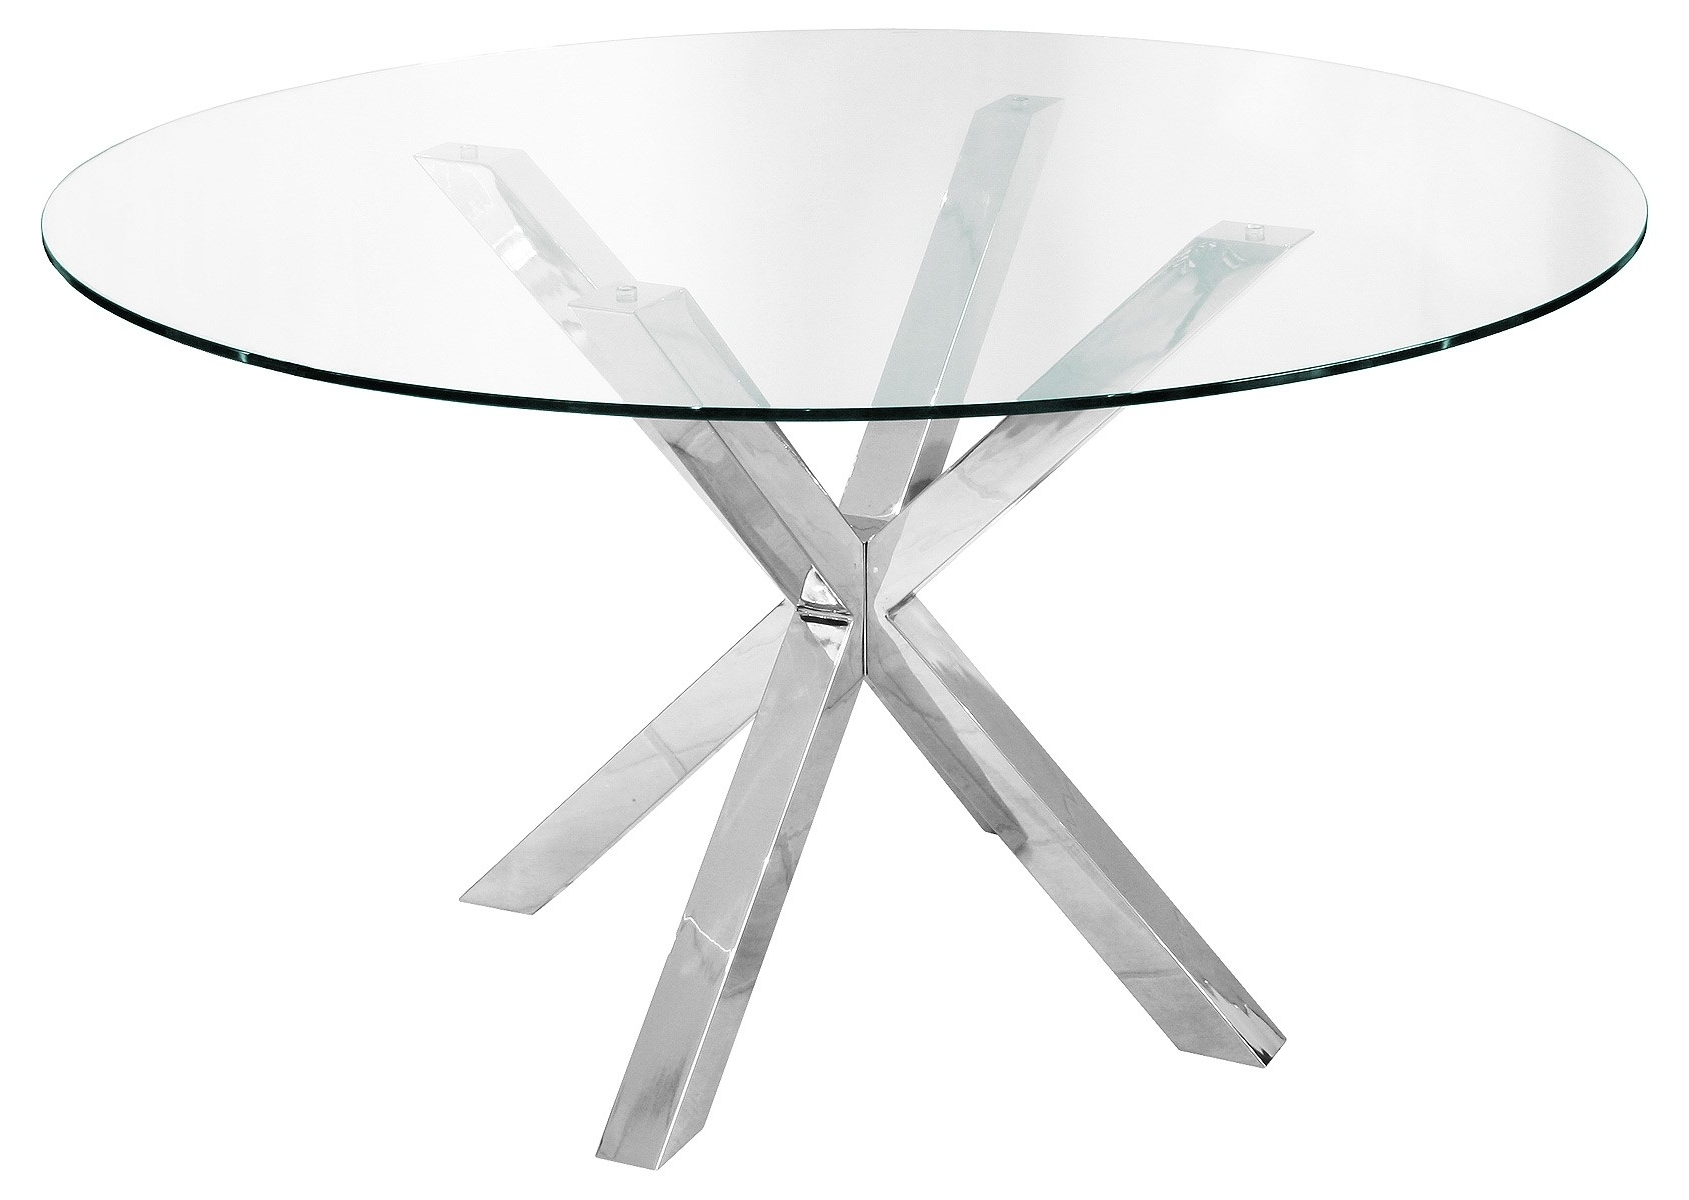 Chrome Glass Dining Tables Regarding Most Current Crossly Round Dining Table – Be Fabulous! (View 13 of 25)